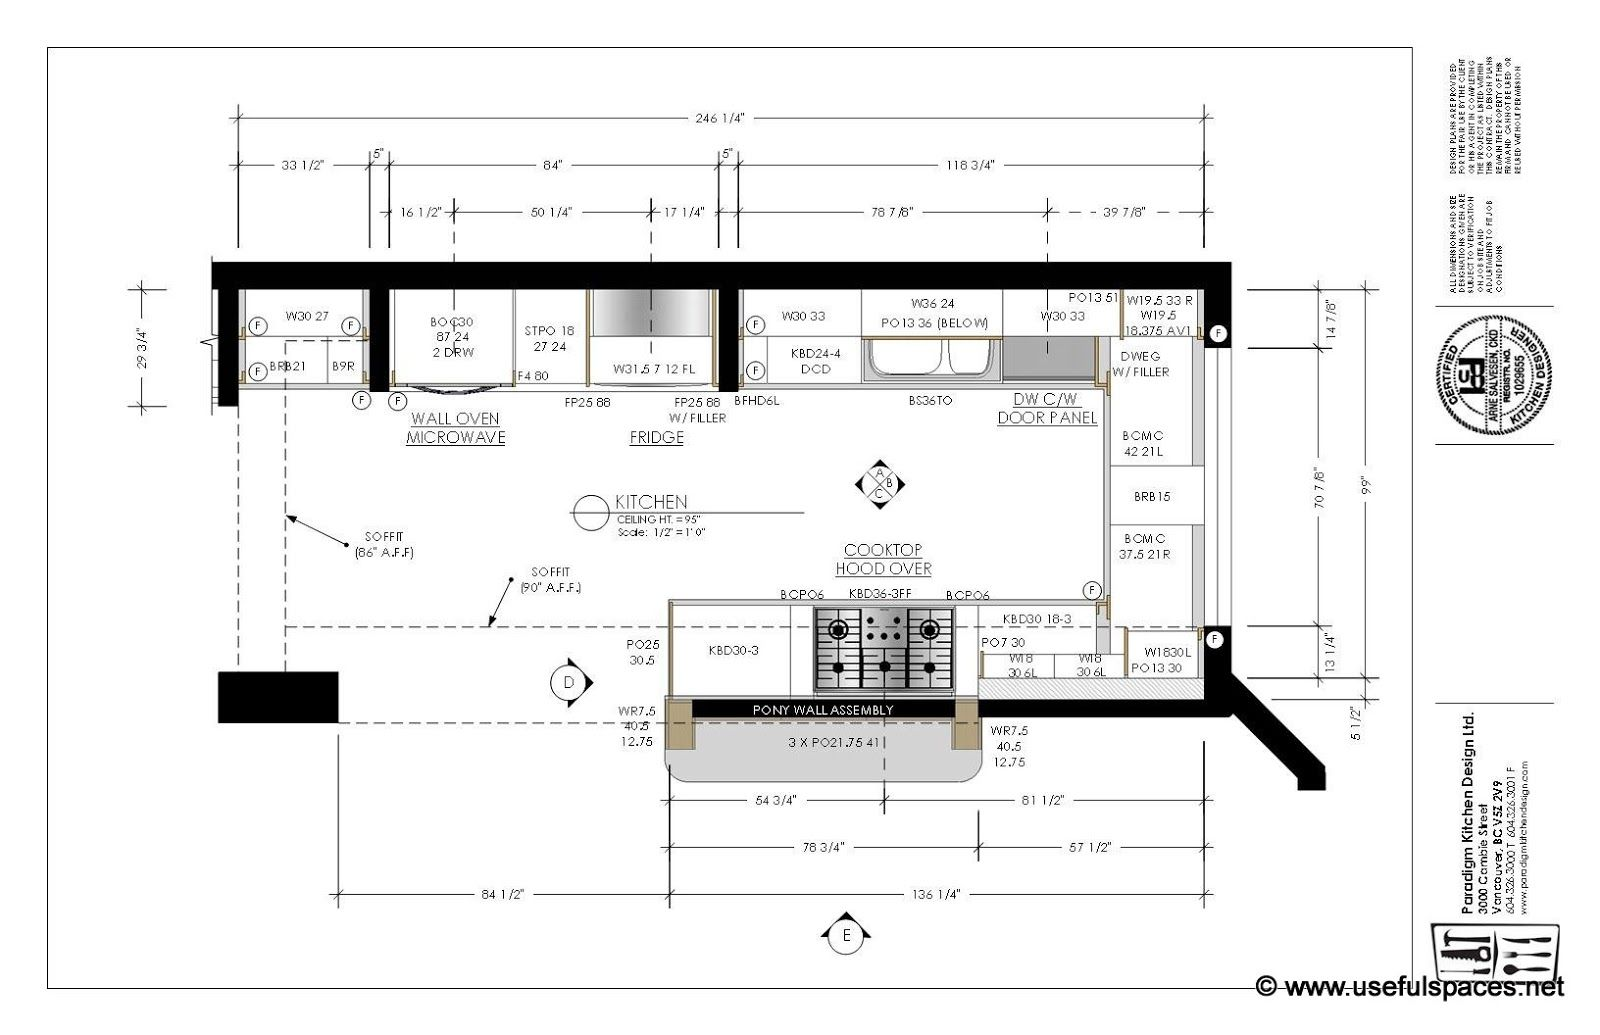 Kitchen Plans Kitchen Layout Templates Restaurant Floor Plan Samples